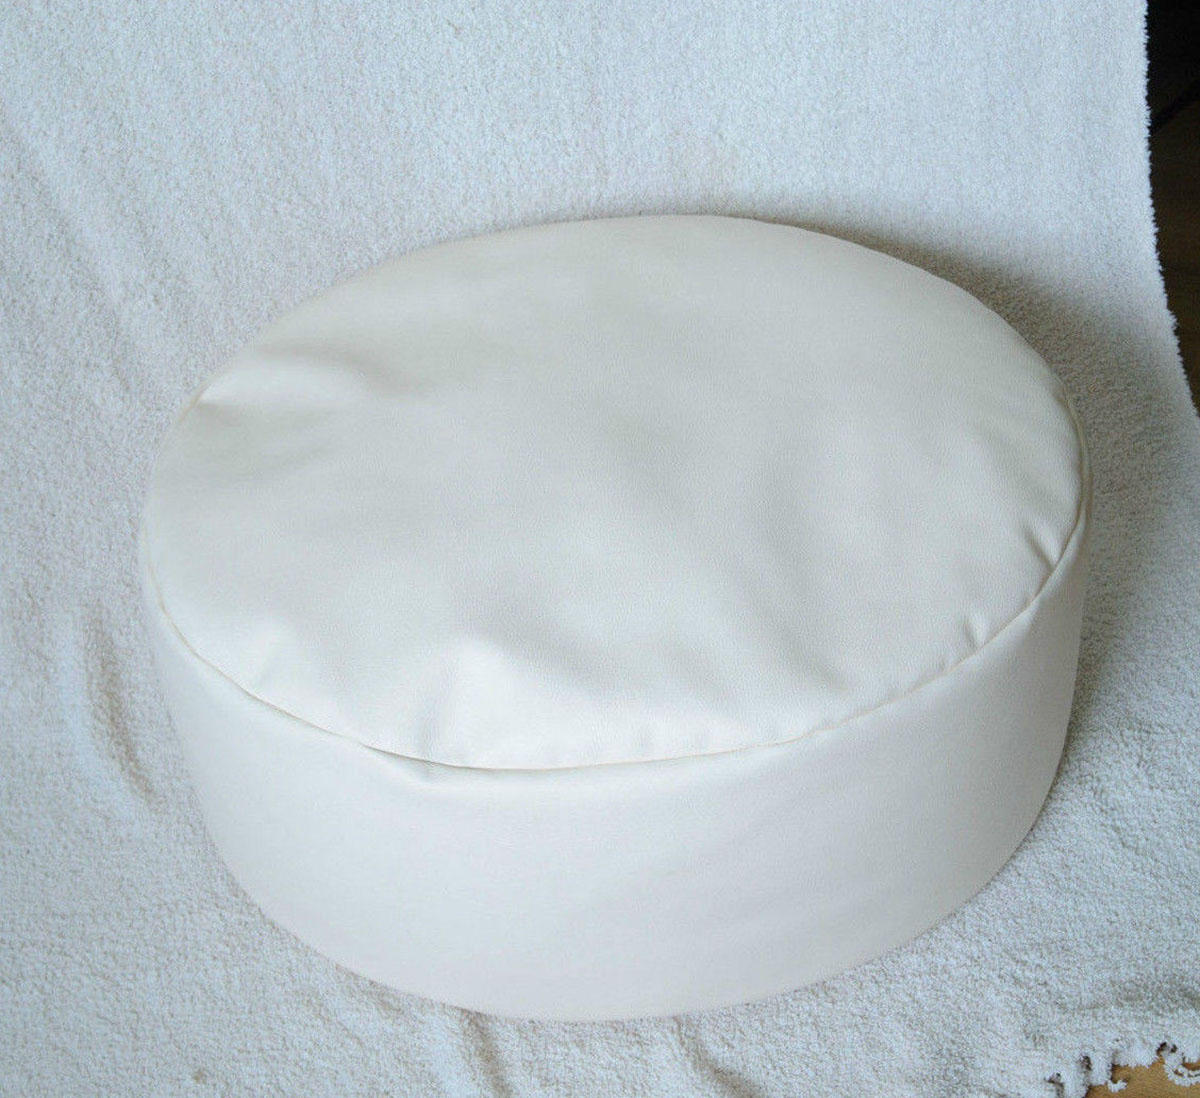 Posing Beanbag Newborn Baby Infant Photography Prop Soft Pillow Bag 80x30CM